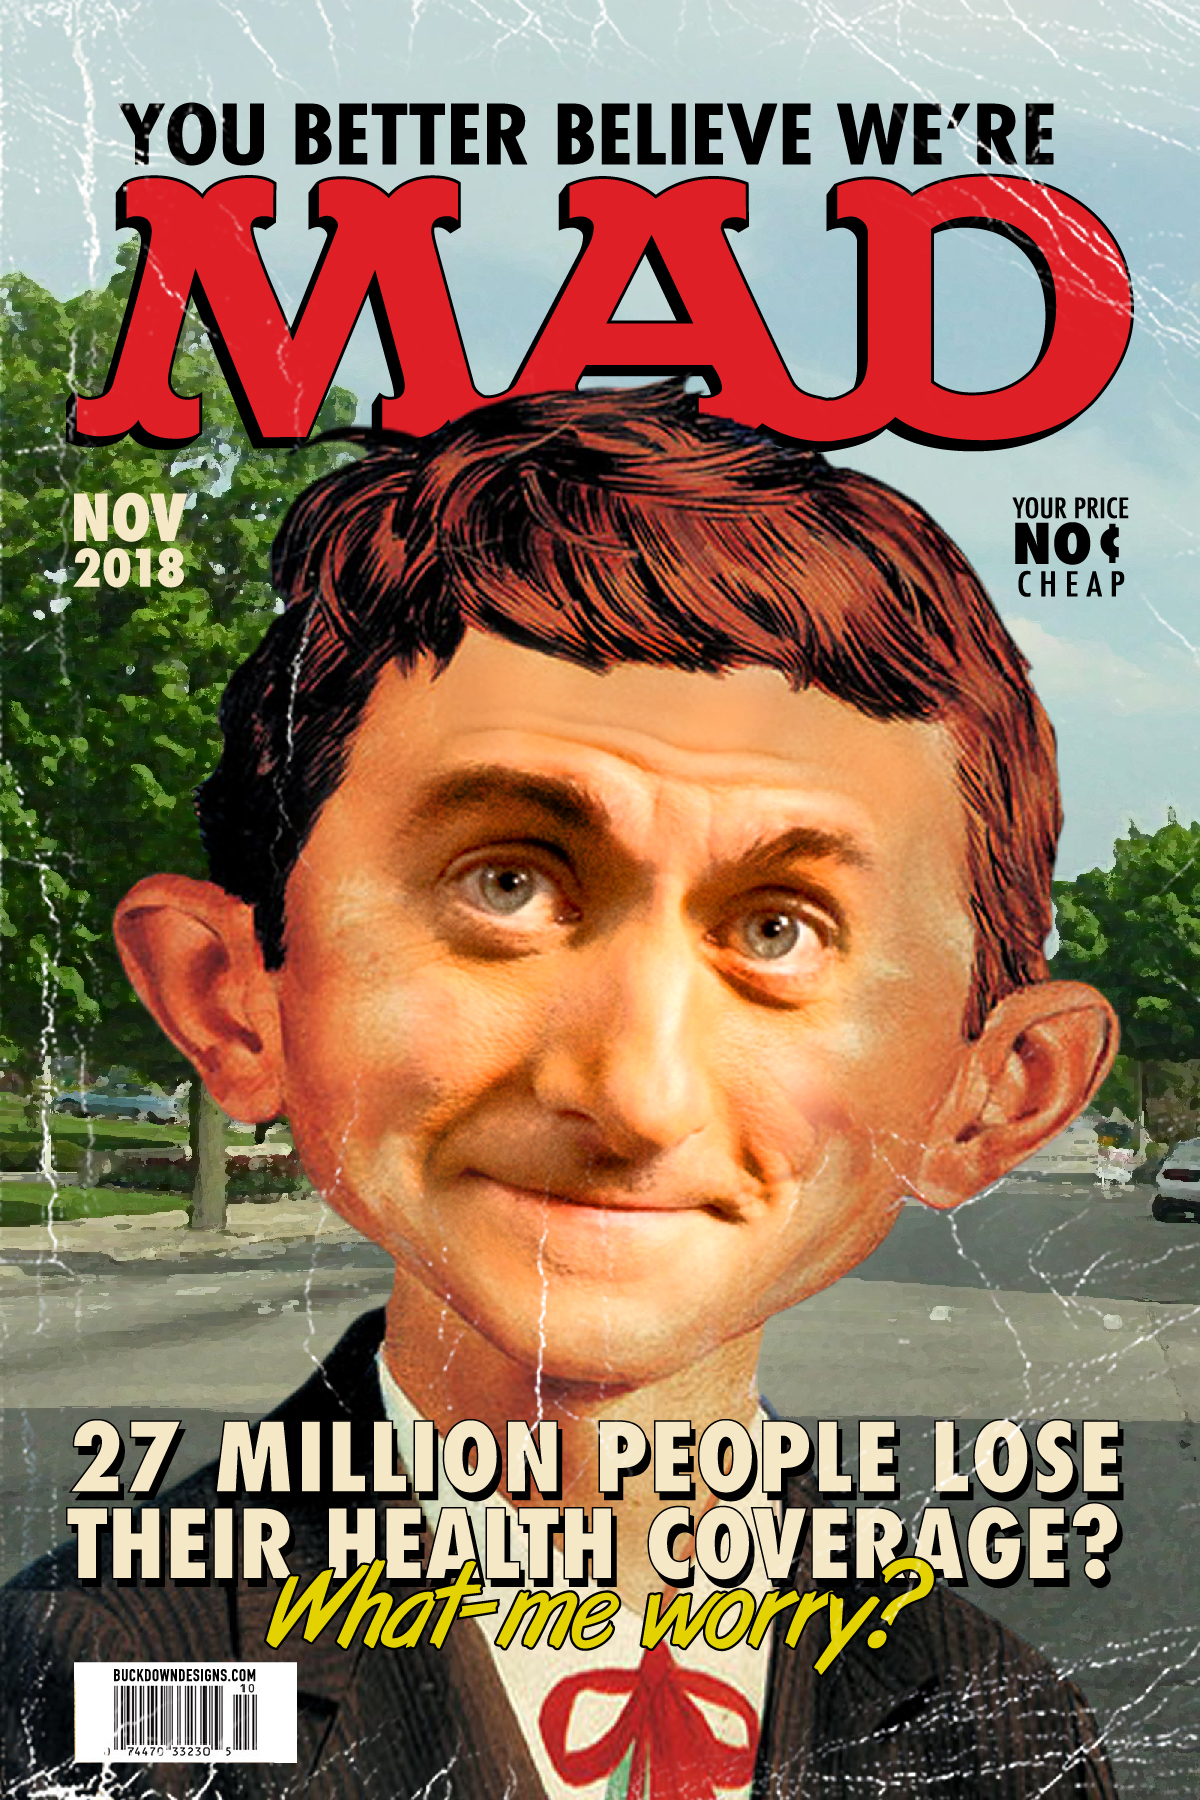 ryan_mad_pc-01.jpg